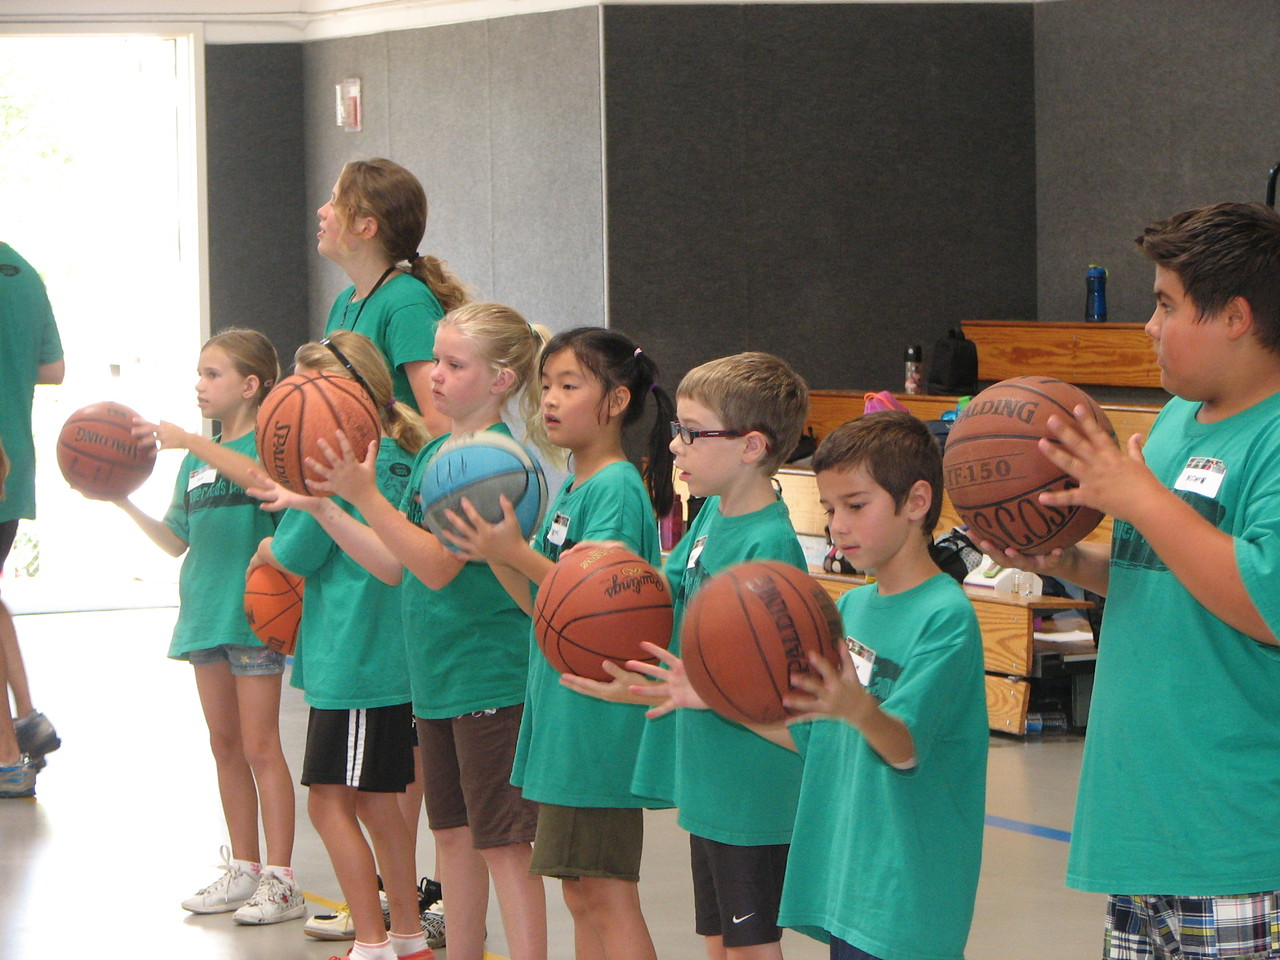 "<center><h3><strong>Summer Kids Camp</strong></h3>Basketball Camp July 13-15. 2010  To see more photos, <a href=""http://photos.compasschurch.org/Compass-Kids/2010-Archived-Photos/Basketball-Camp-2010/12705566_TSsfJ#957374580_dQxr9"">click here</a>.</center>"